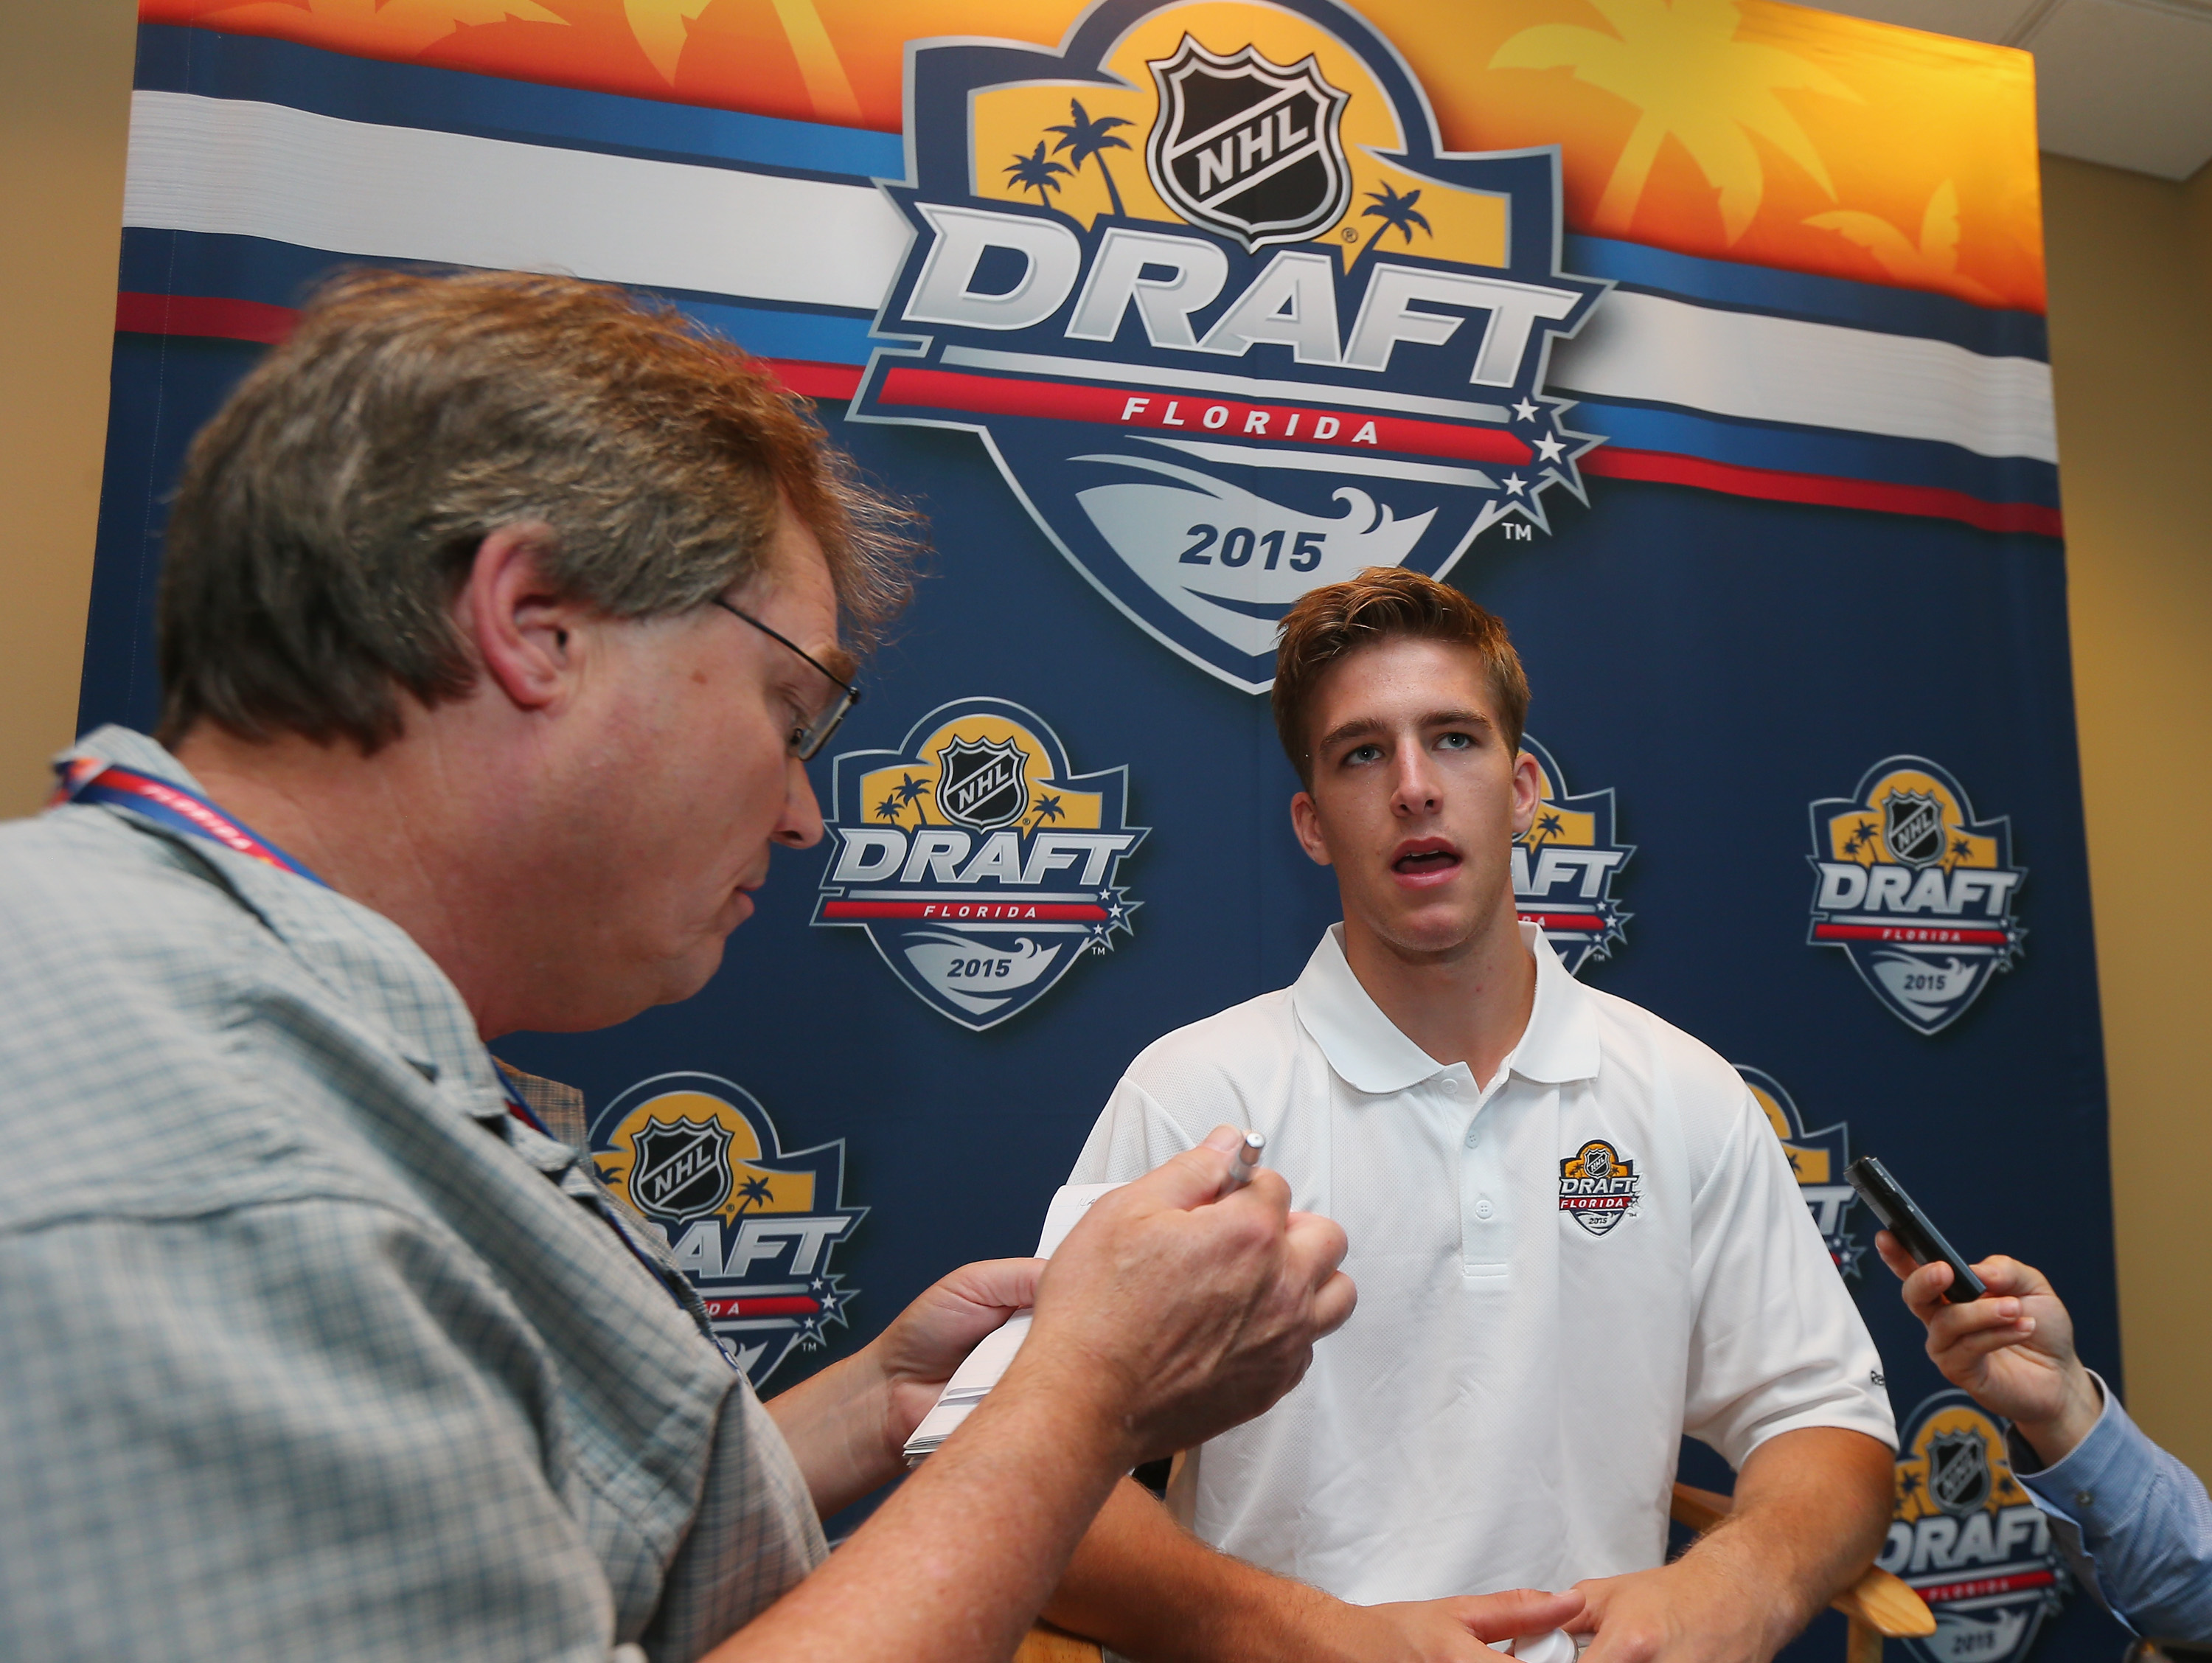 Noah Hanifin had his day on Friday night. It's everyone else's on Saturday morning for the second through seventh rounds of the 2015 NHL Draft.